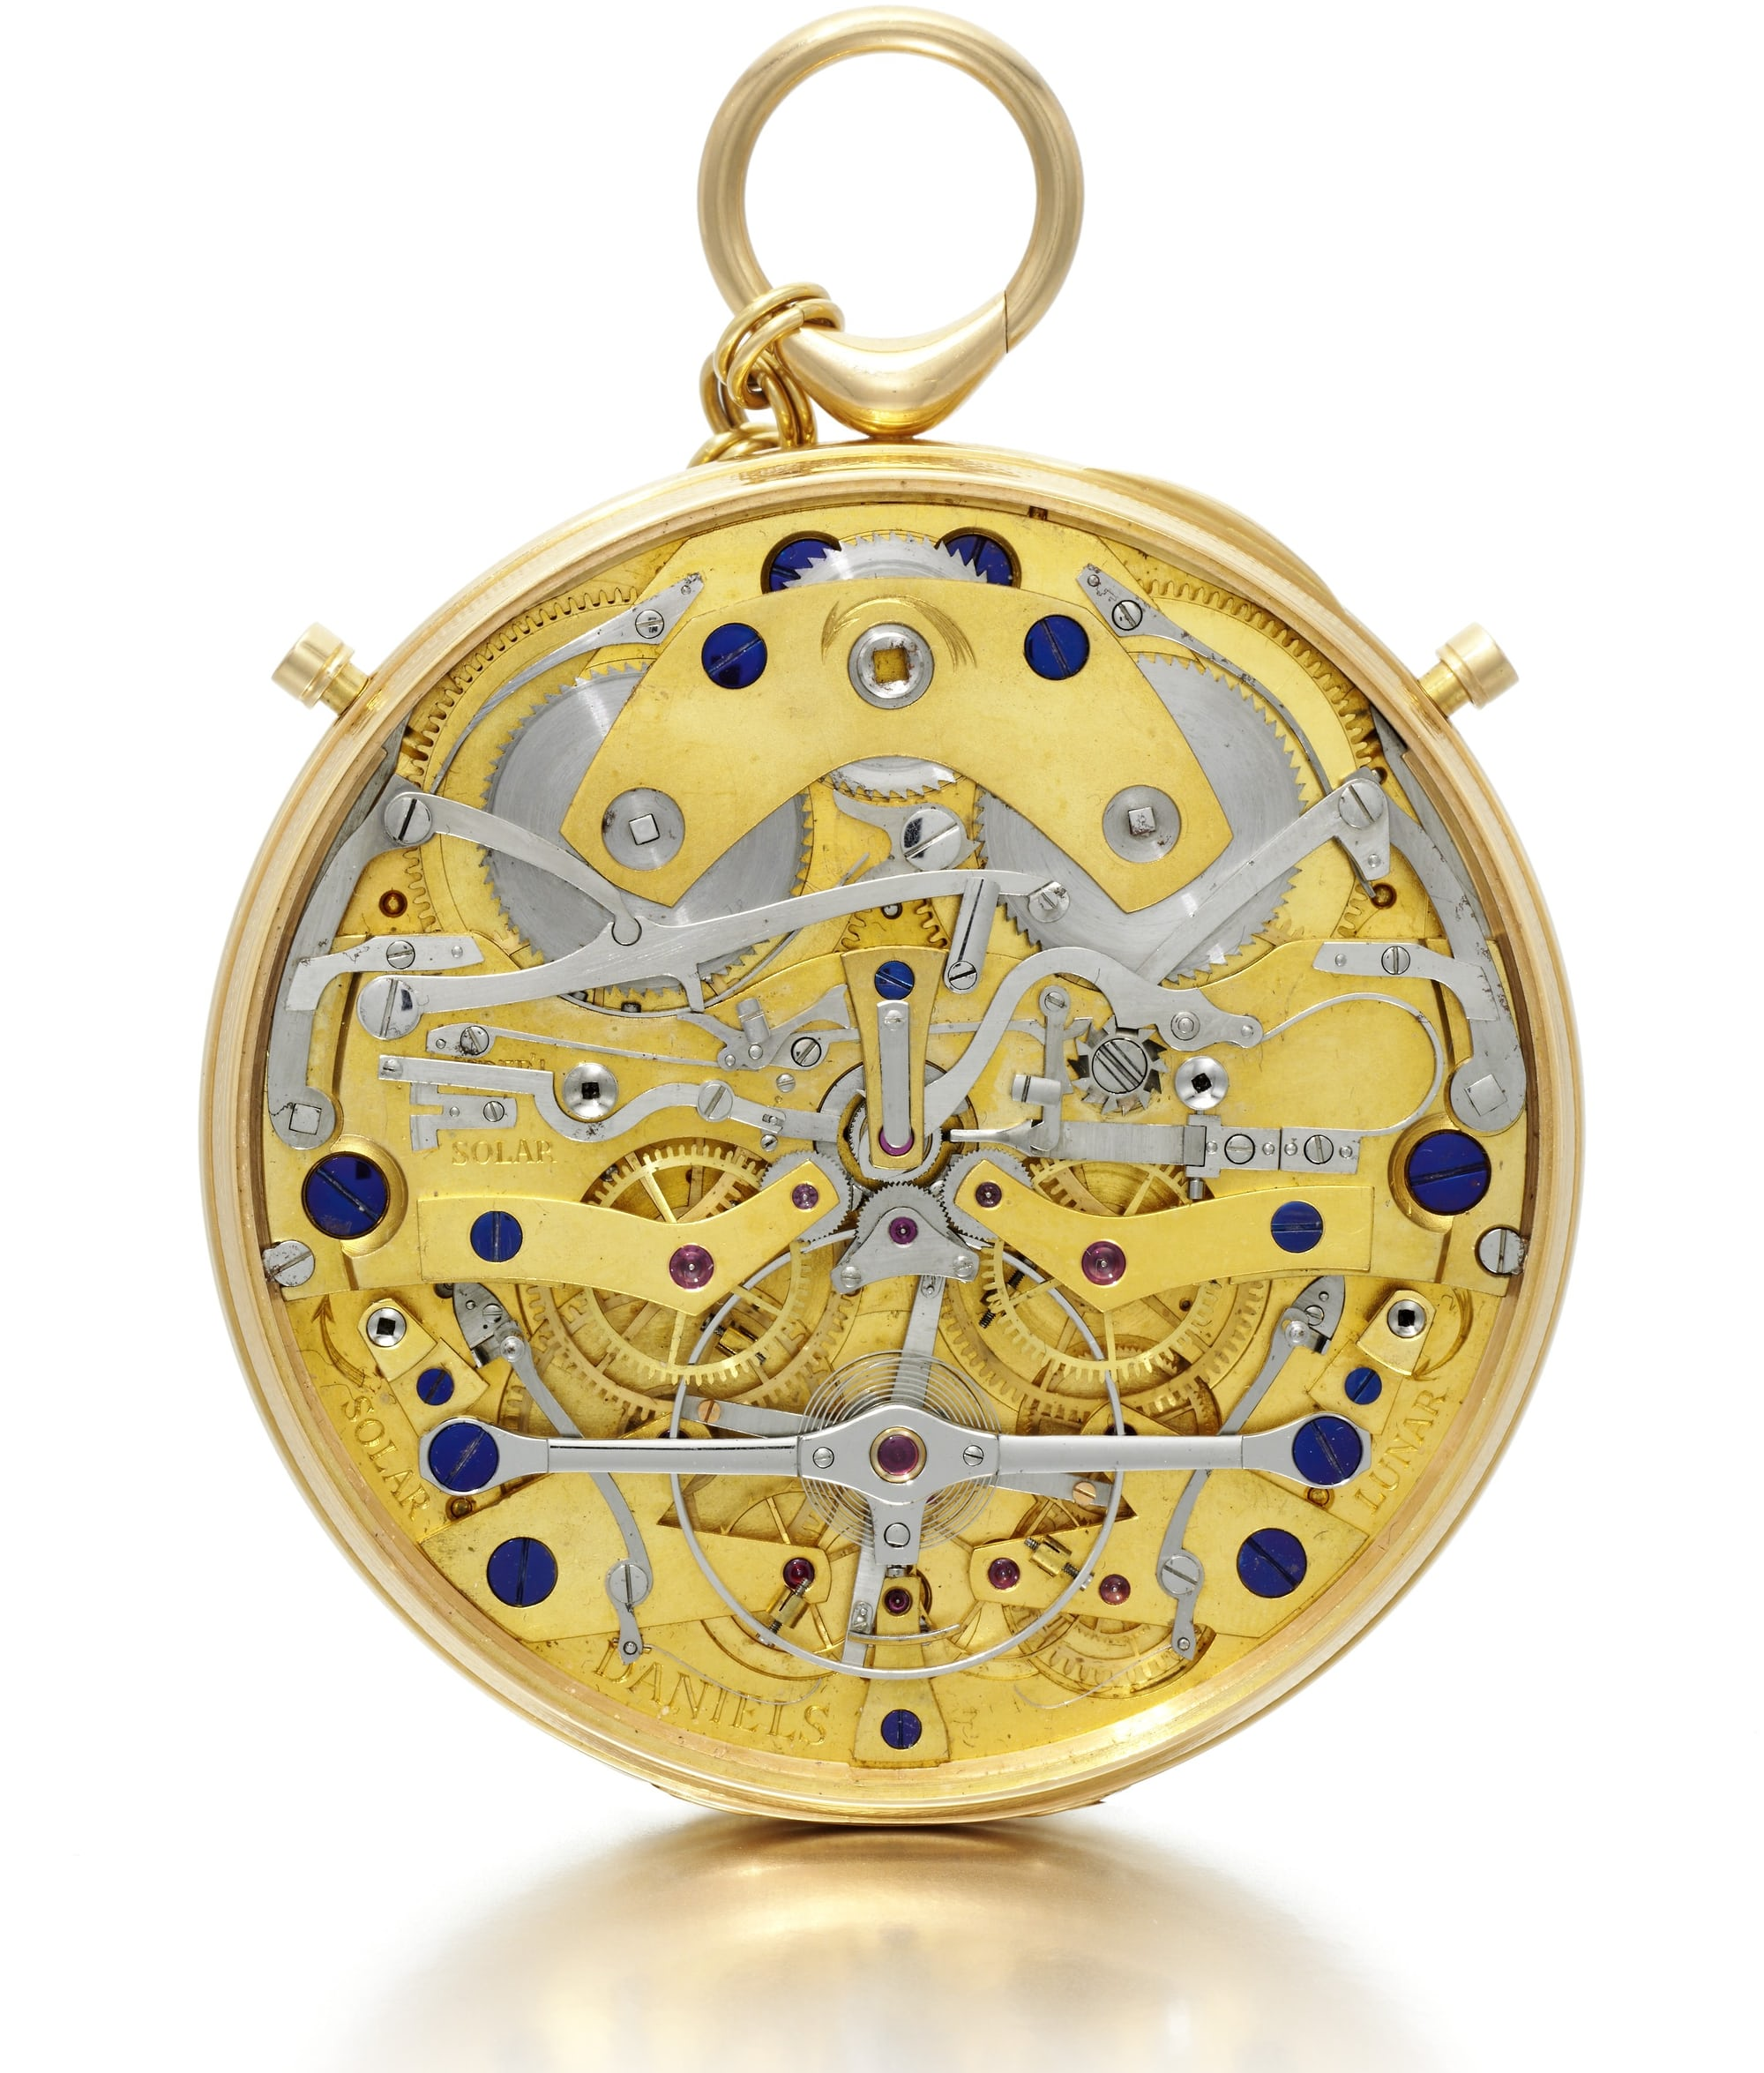 Auction Report: Sotheby's To Offer The Daniels 'Space Traveller' Watch, September 19th In London Auction Report: Sotheby's To Offer The Daniels 'Space Traveller' Watch, September 19th In London Daniels   SPACE TRAVELLERS WATCH  reverse